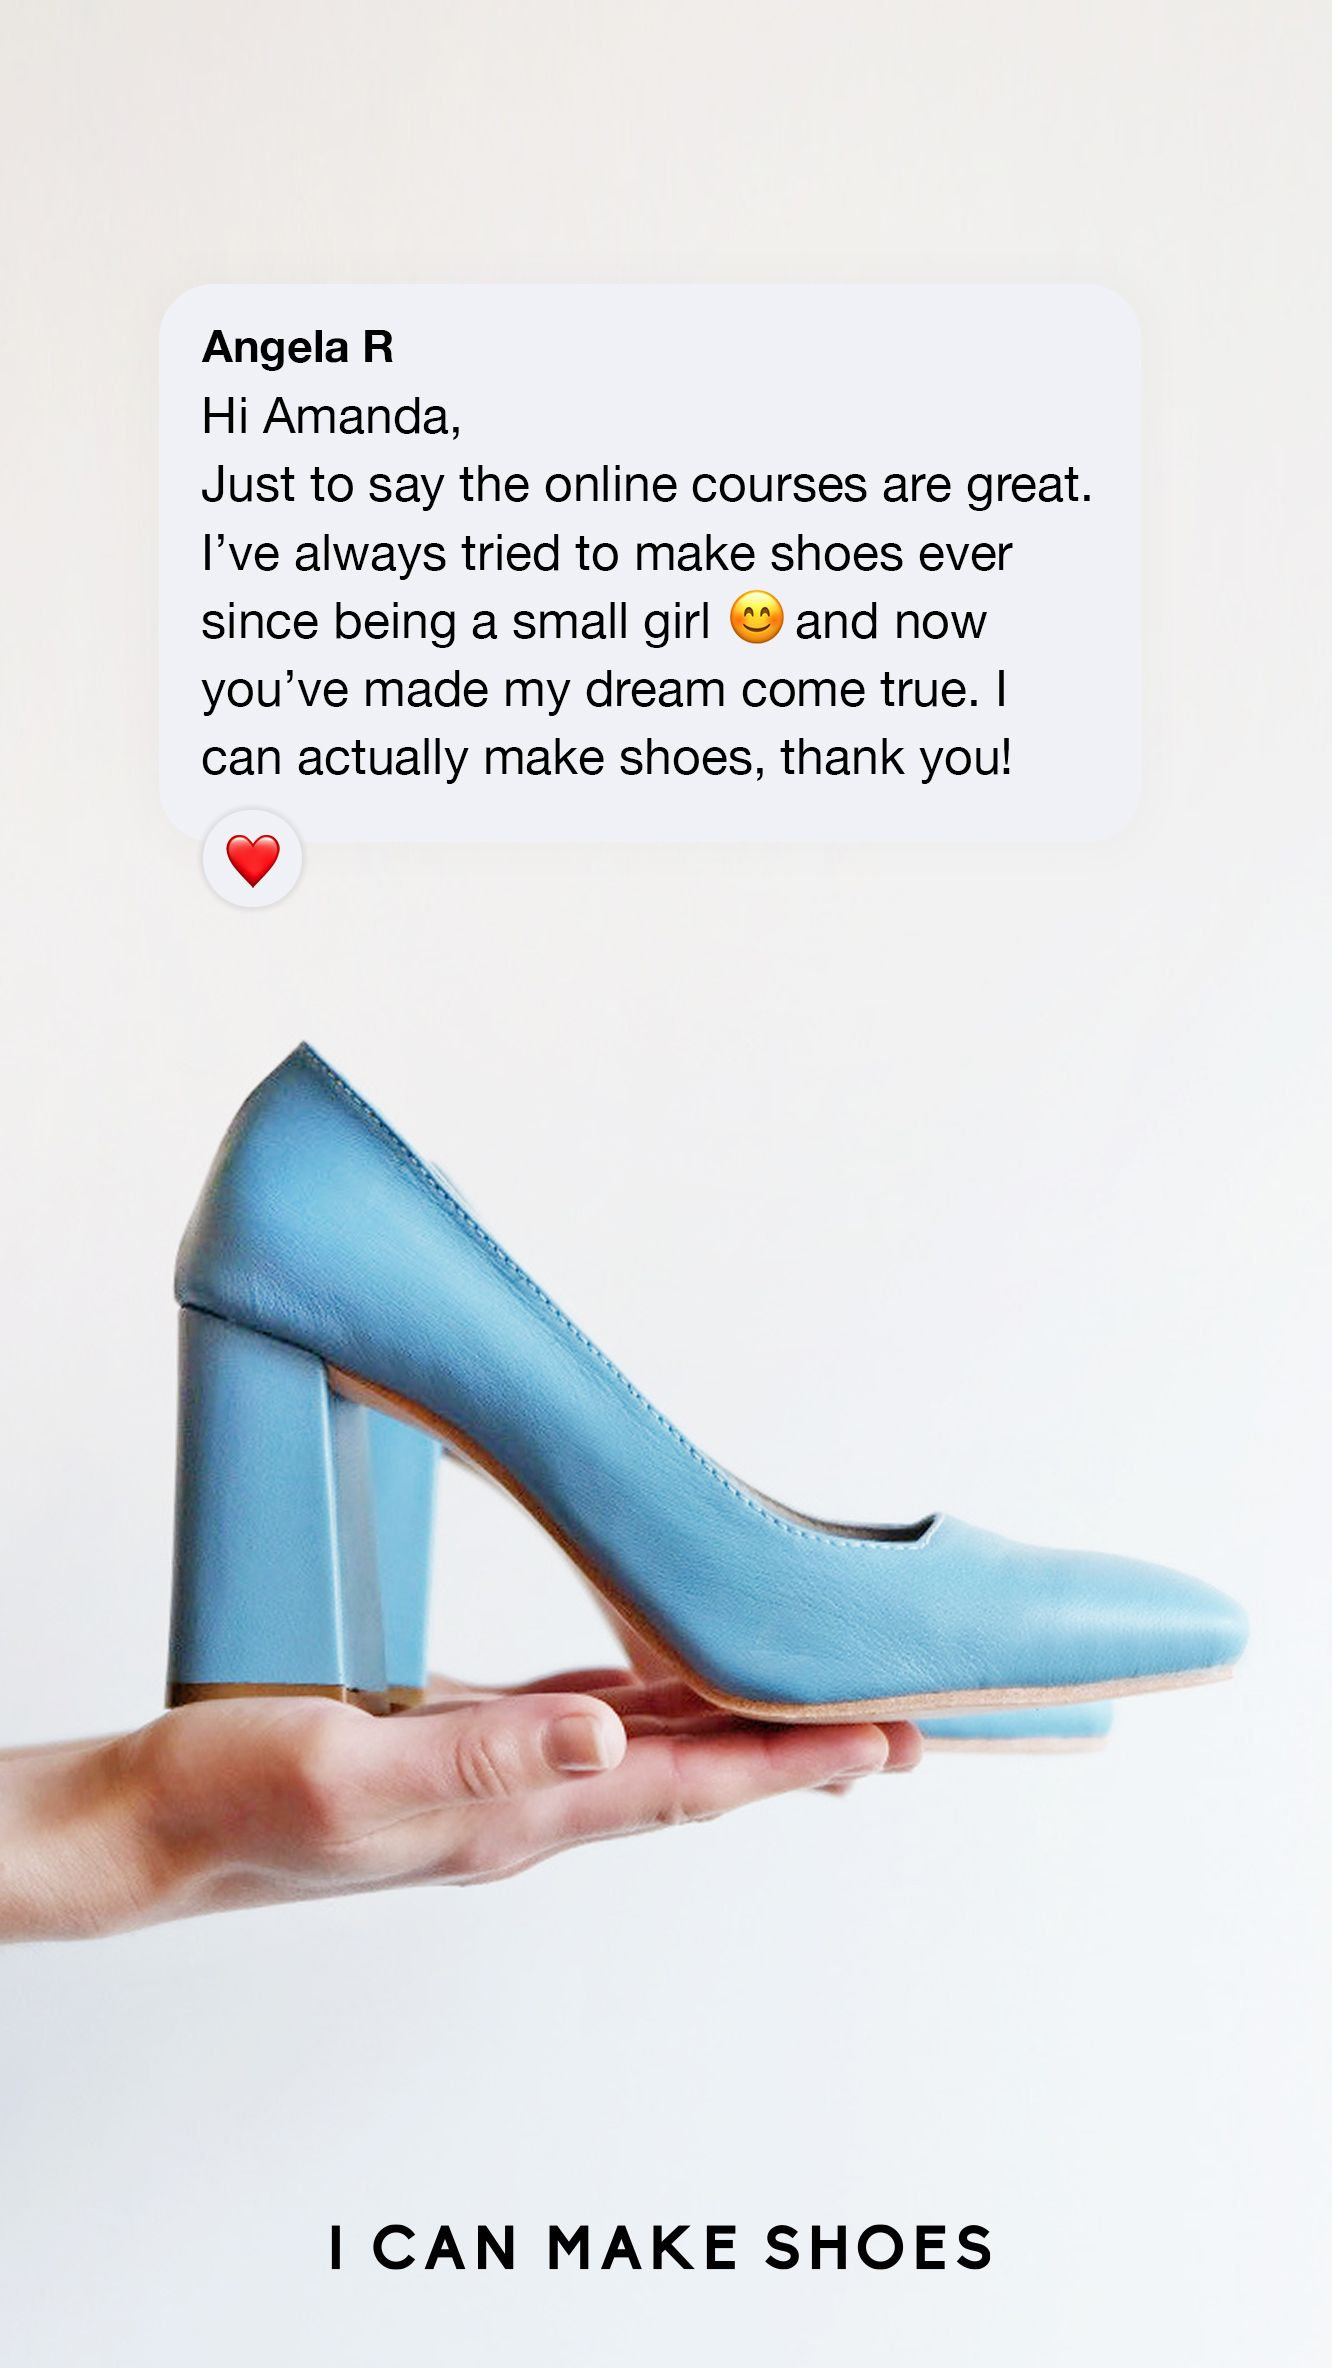 Online Course - Home Shoemaking in 2020